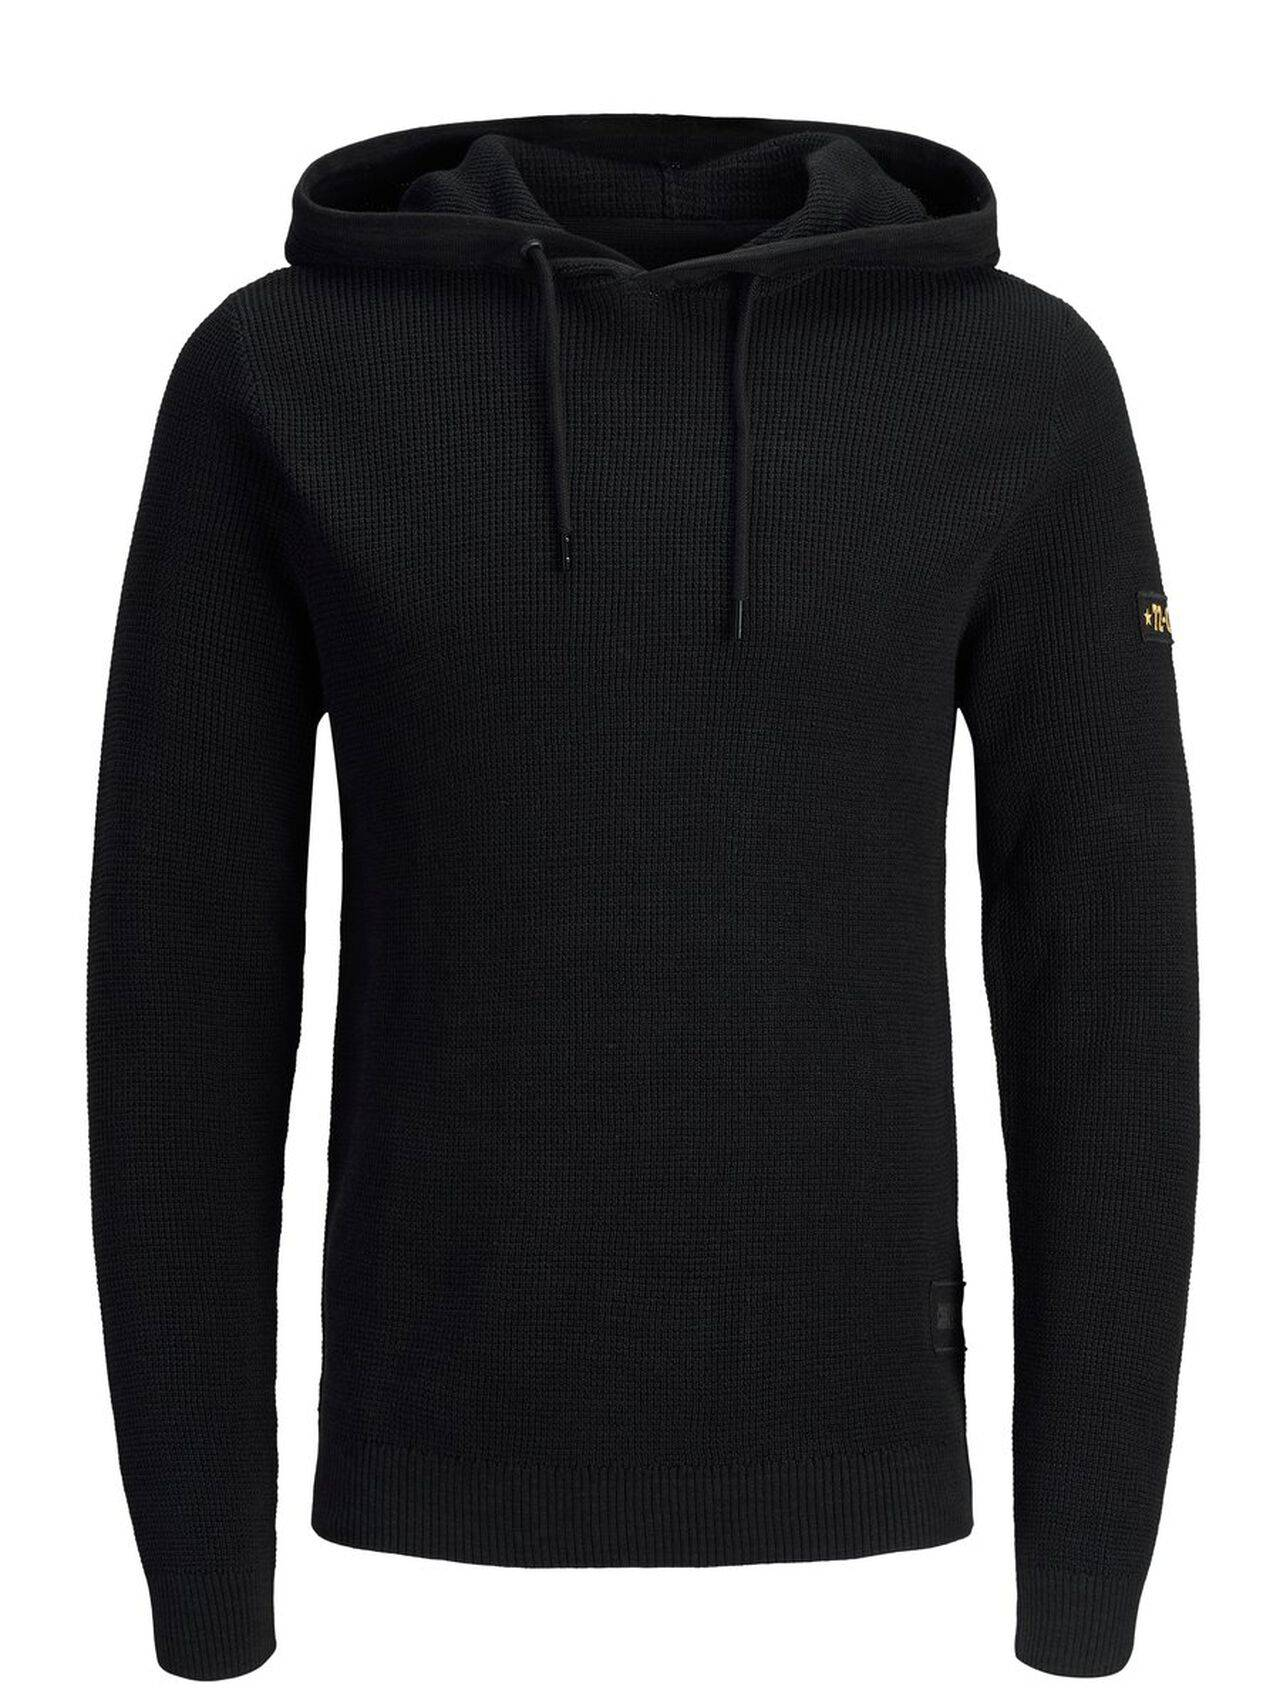 JACK & JONES Knitted Hoodie Men Black Black